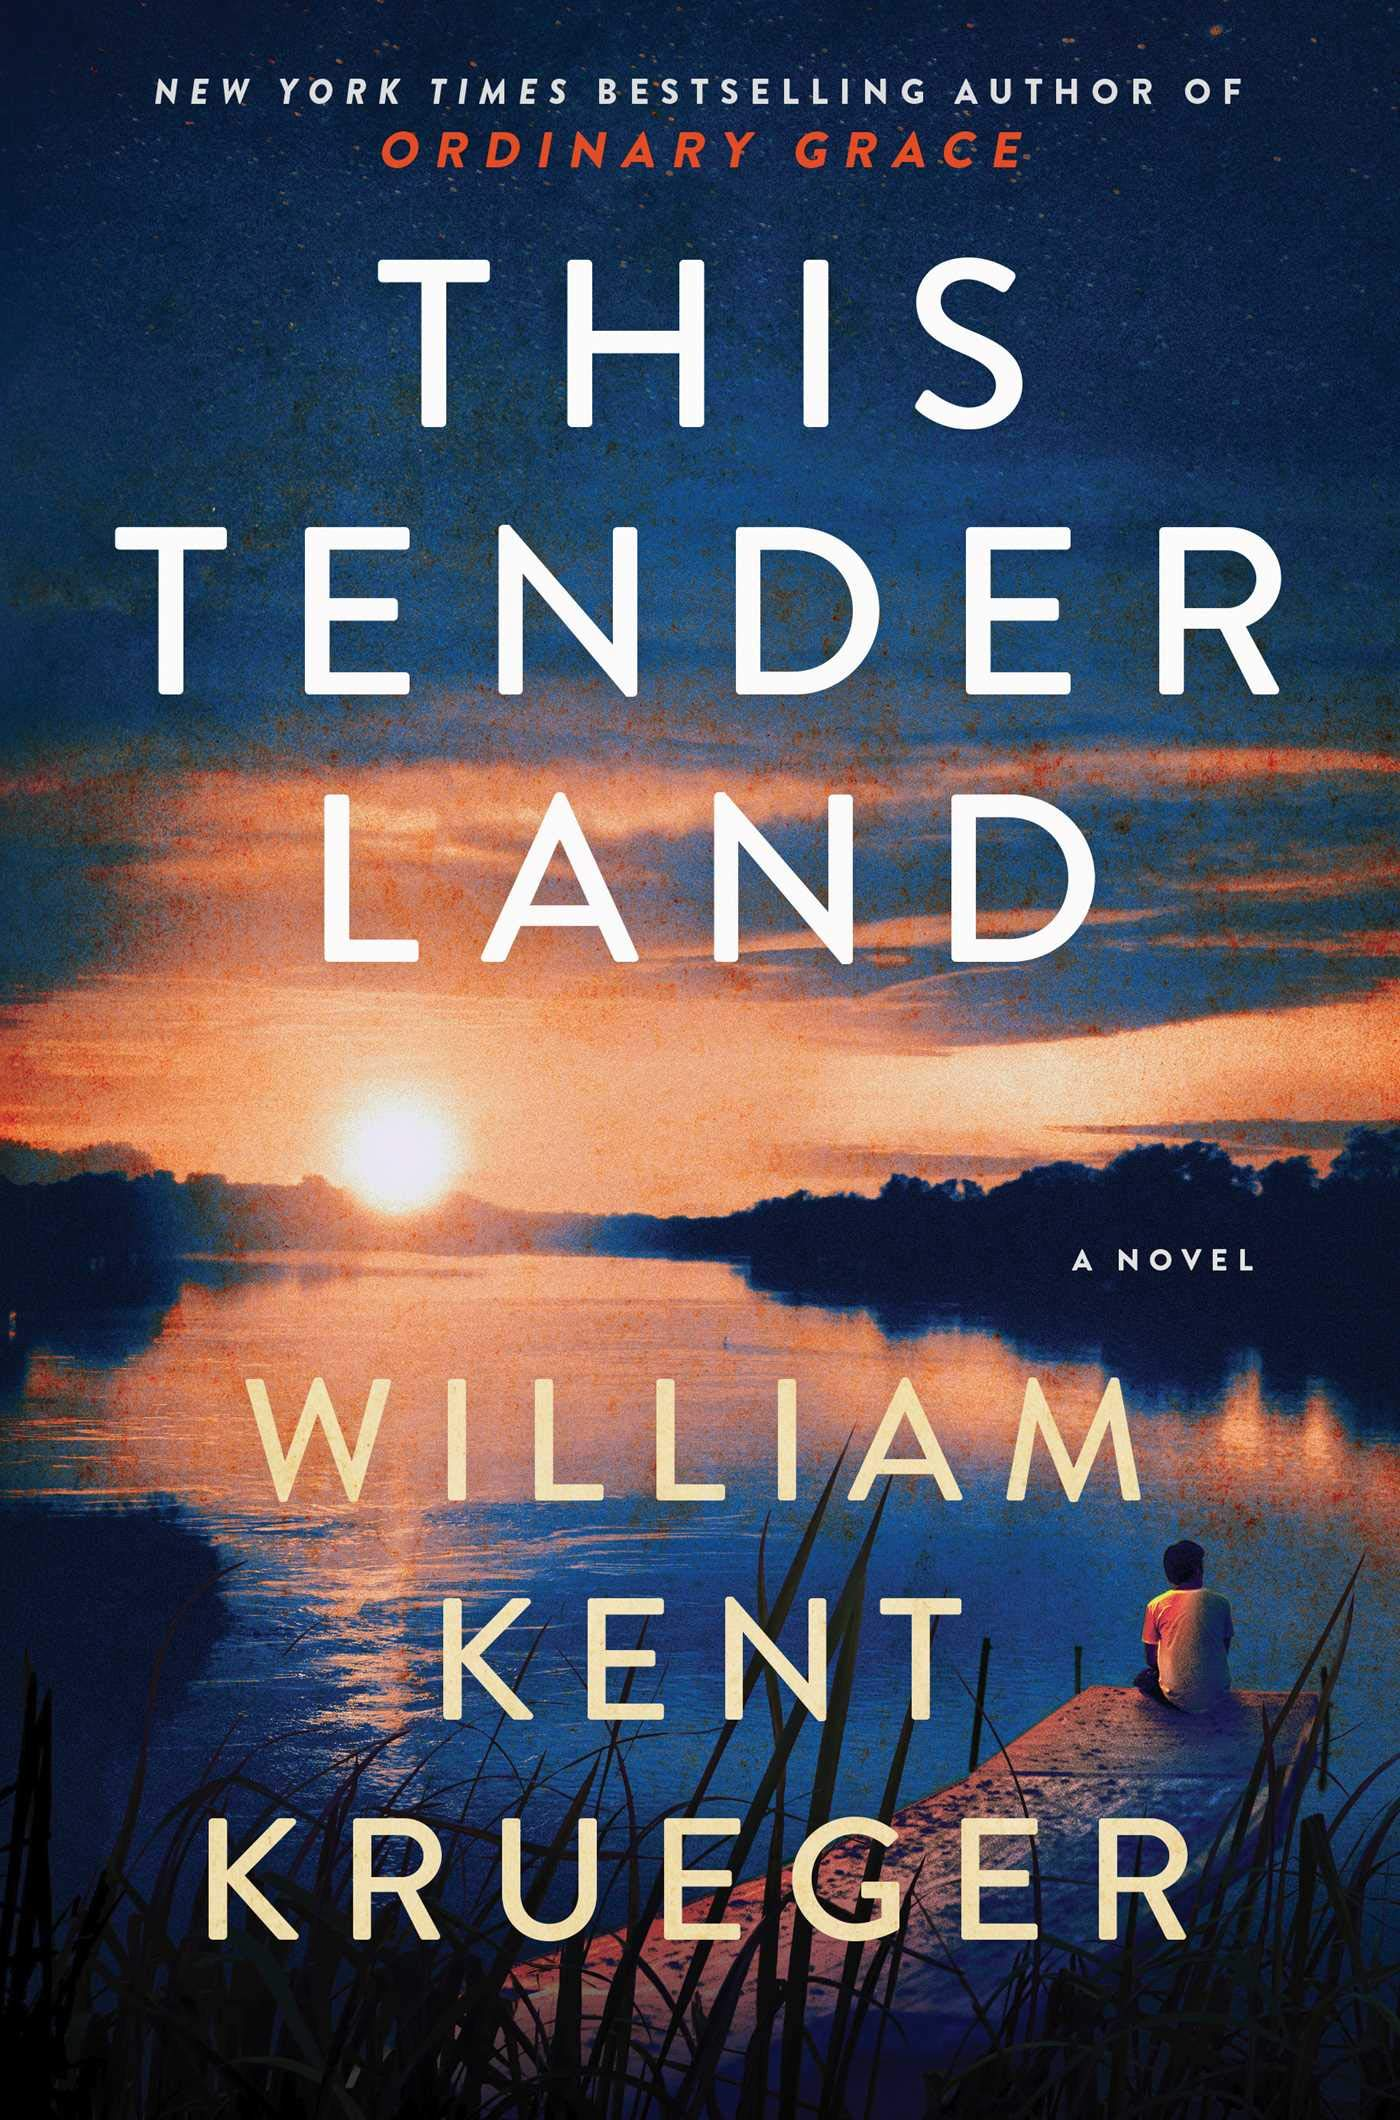 Image result for this tender land by william kent krueger